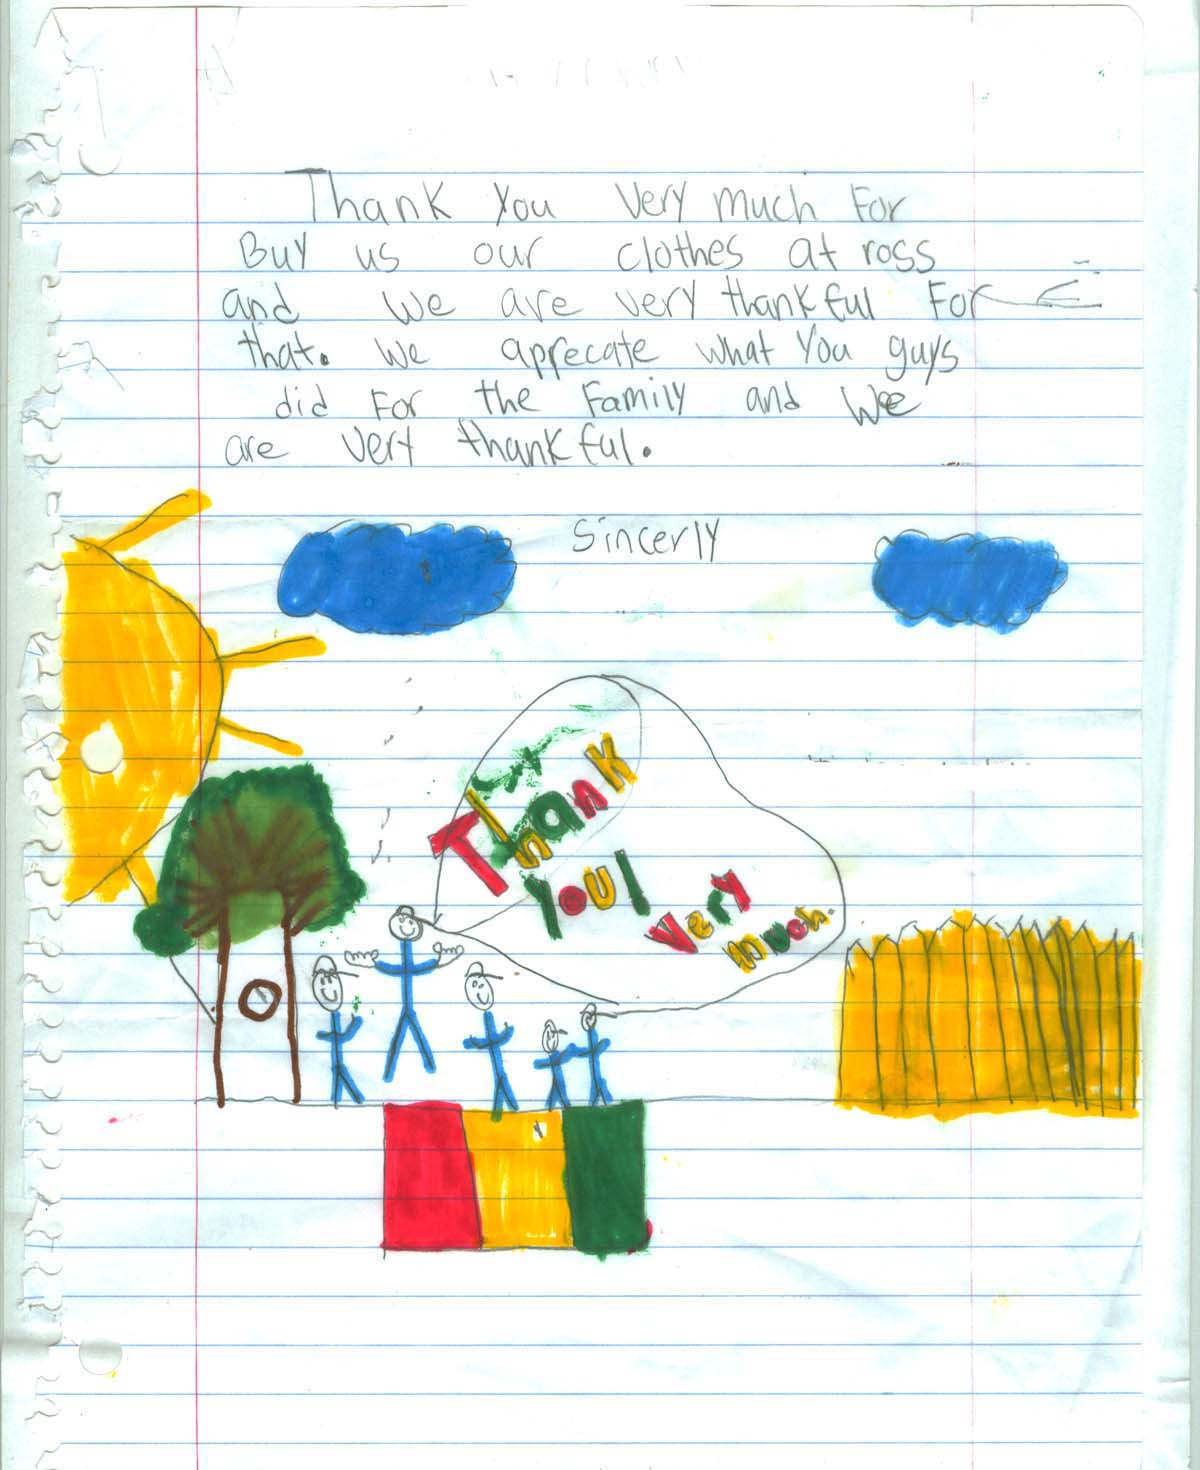 Child Thank you letter 5.